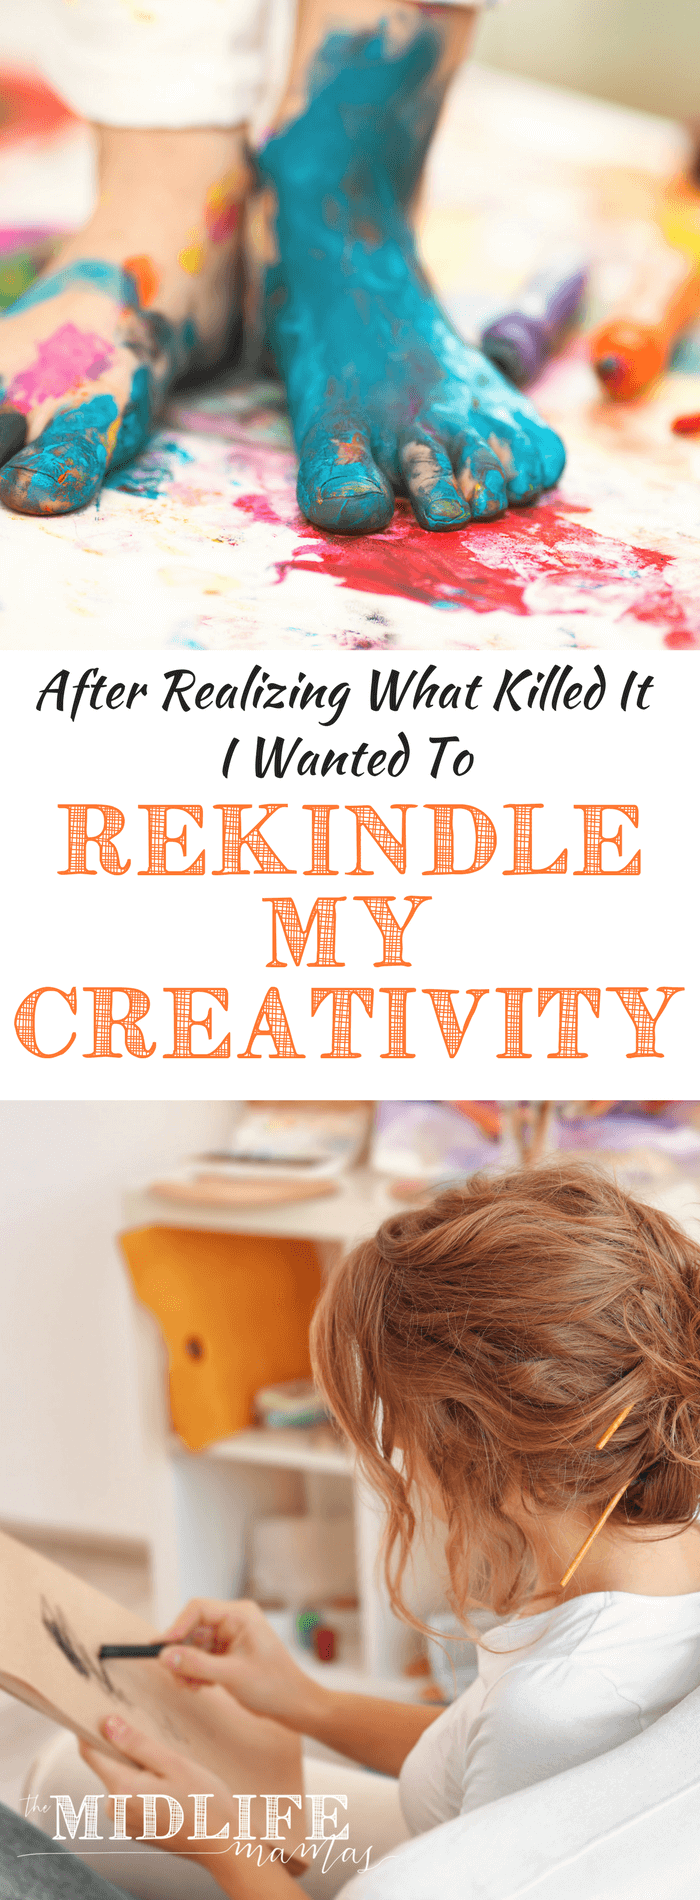 Want inspiration to be creative? It doesn't matter whether your jam is photography, writing, arts or crafts - creativity actually correlates with happiness and life satisfaction! #creativity #inspiration www.themidlifemamas.com